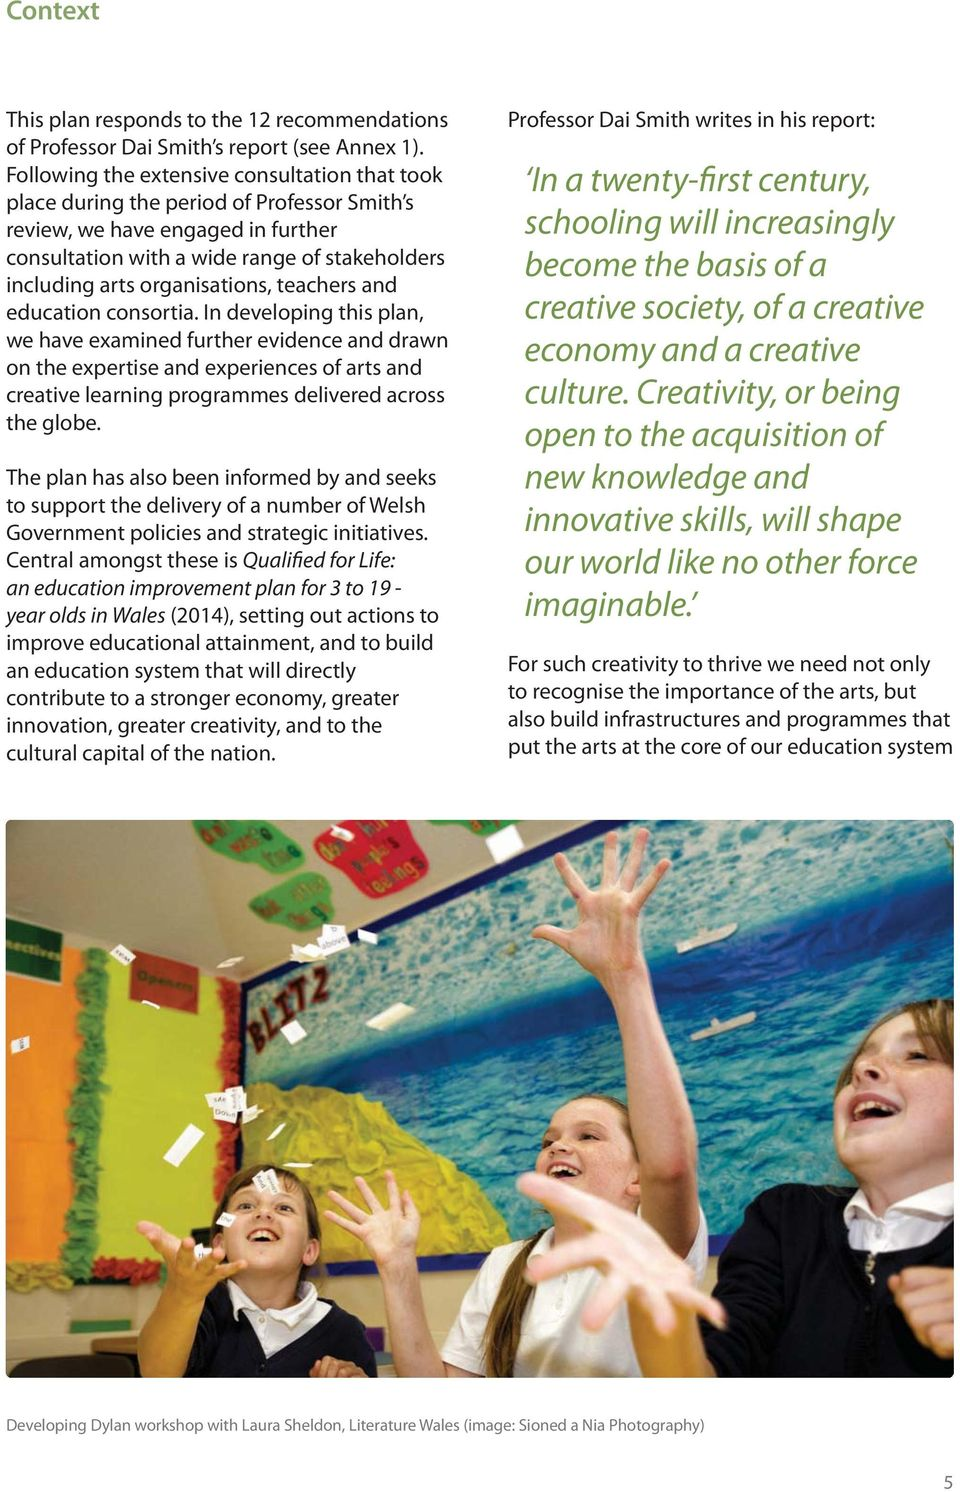 teachers and education consortia. In deveoping this pan, we have examined further evidence and drawn on the expertise and experiences of arts and creative earning programmes deivered across the gobe.